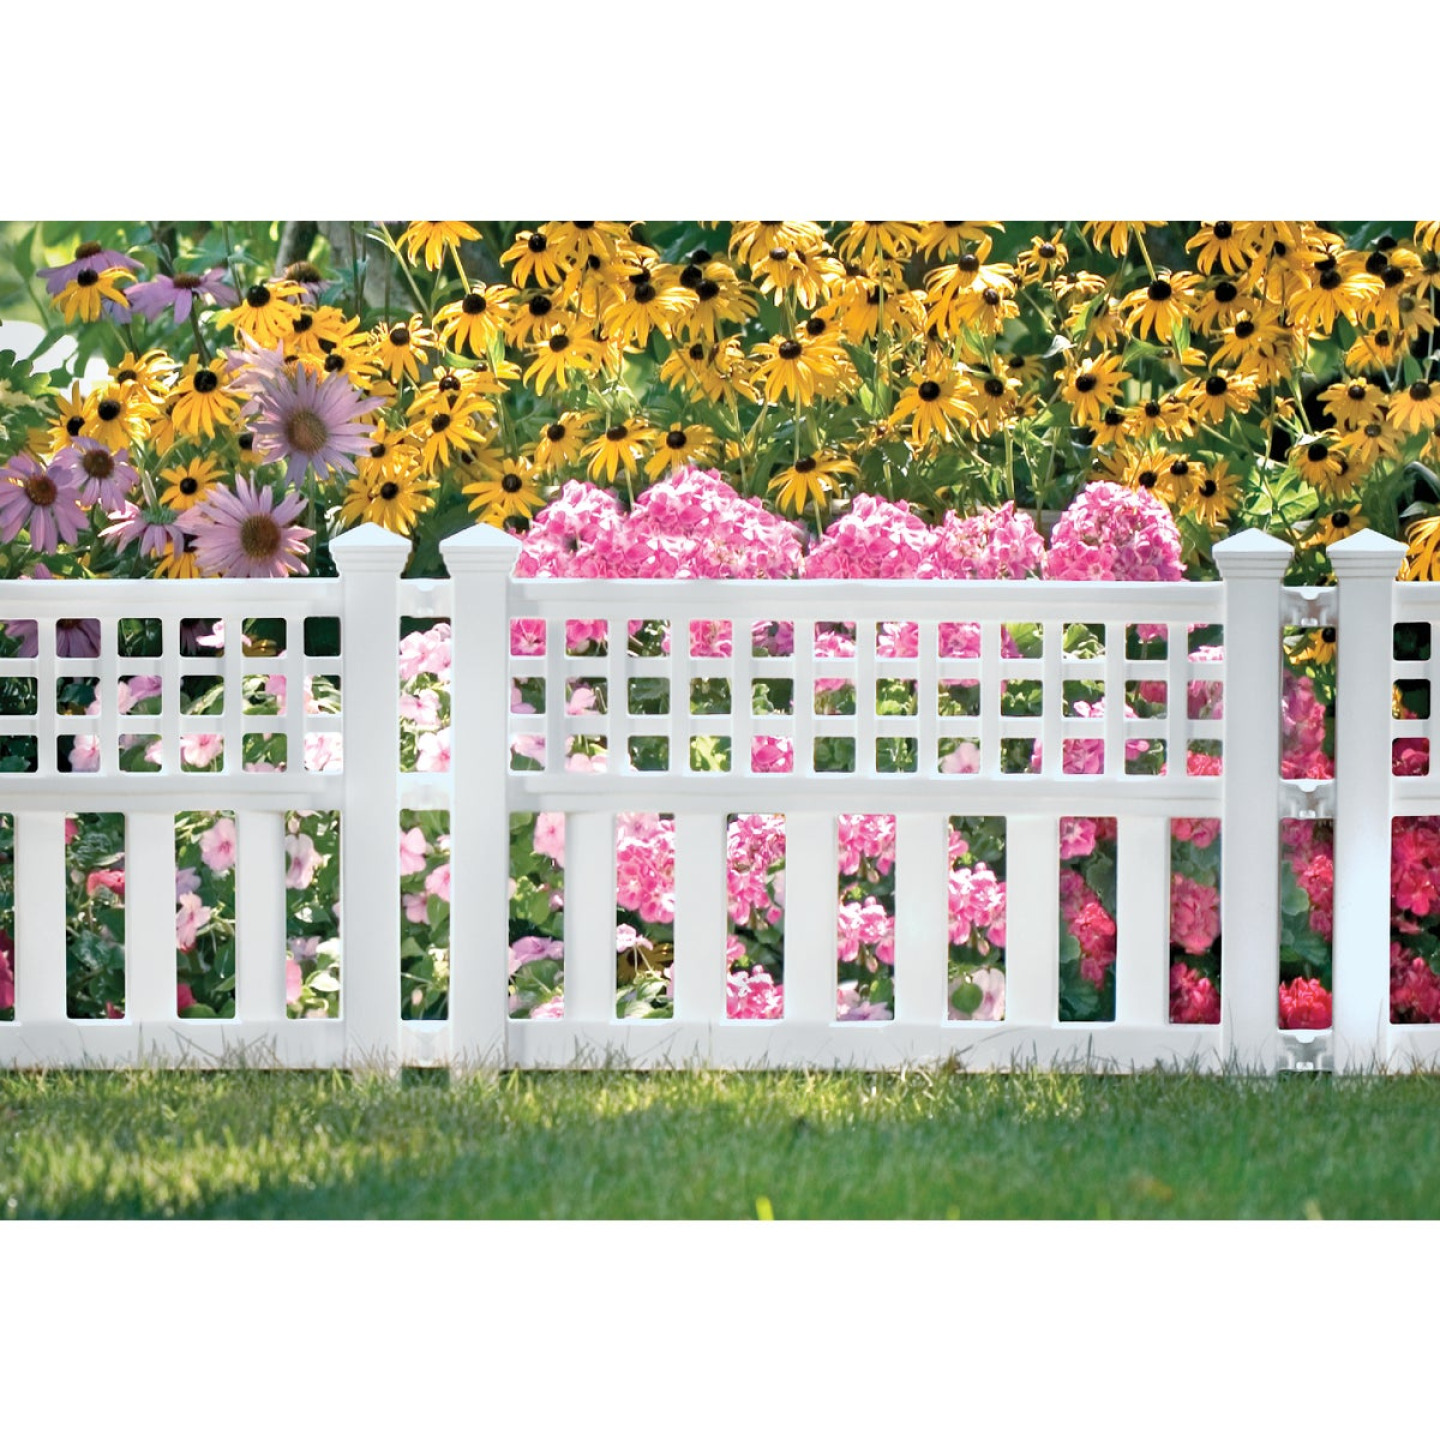 Suncast 20 1/2 In. H x 24 In. L Resin Decorative Border Fence Image 1